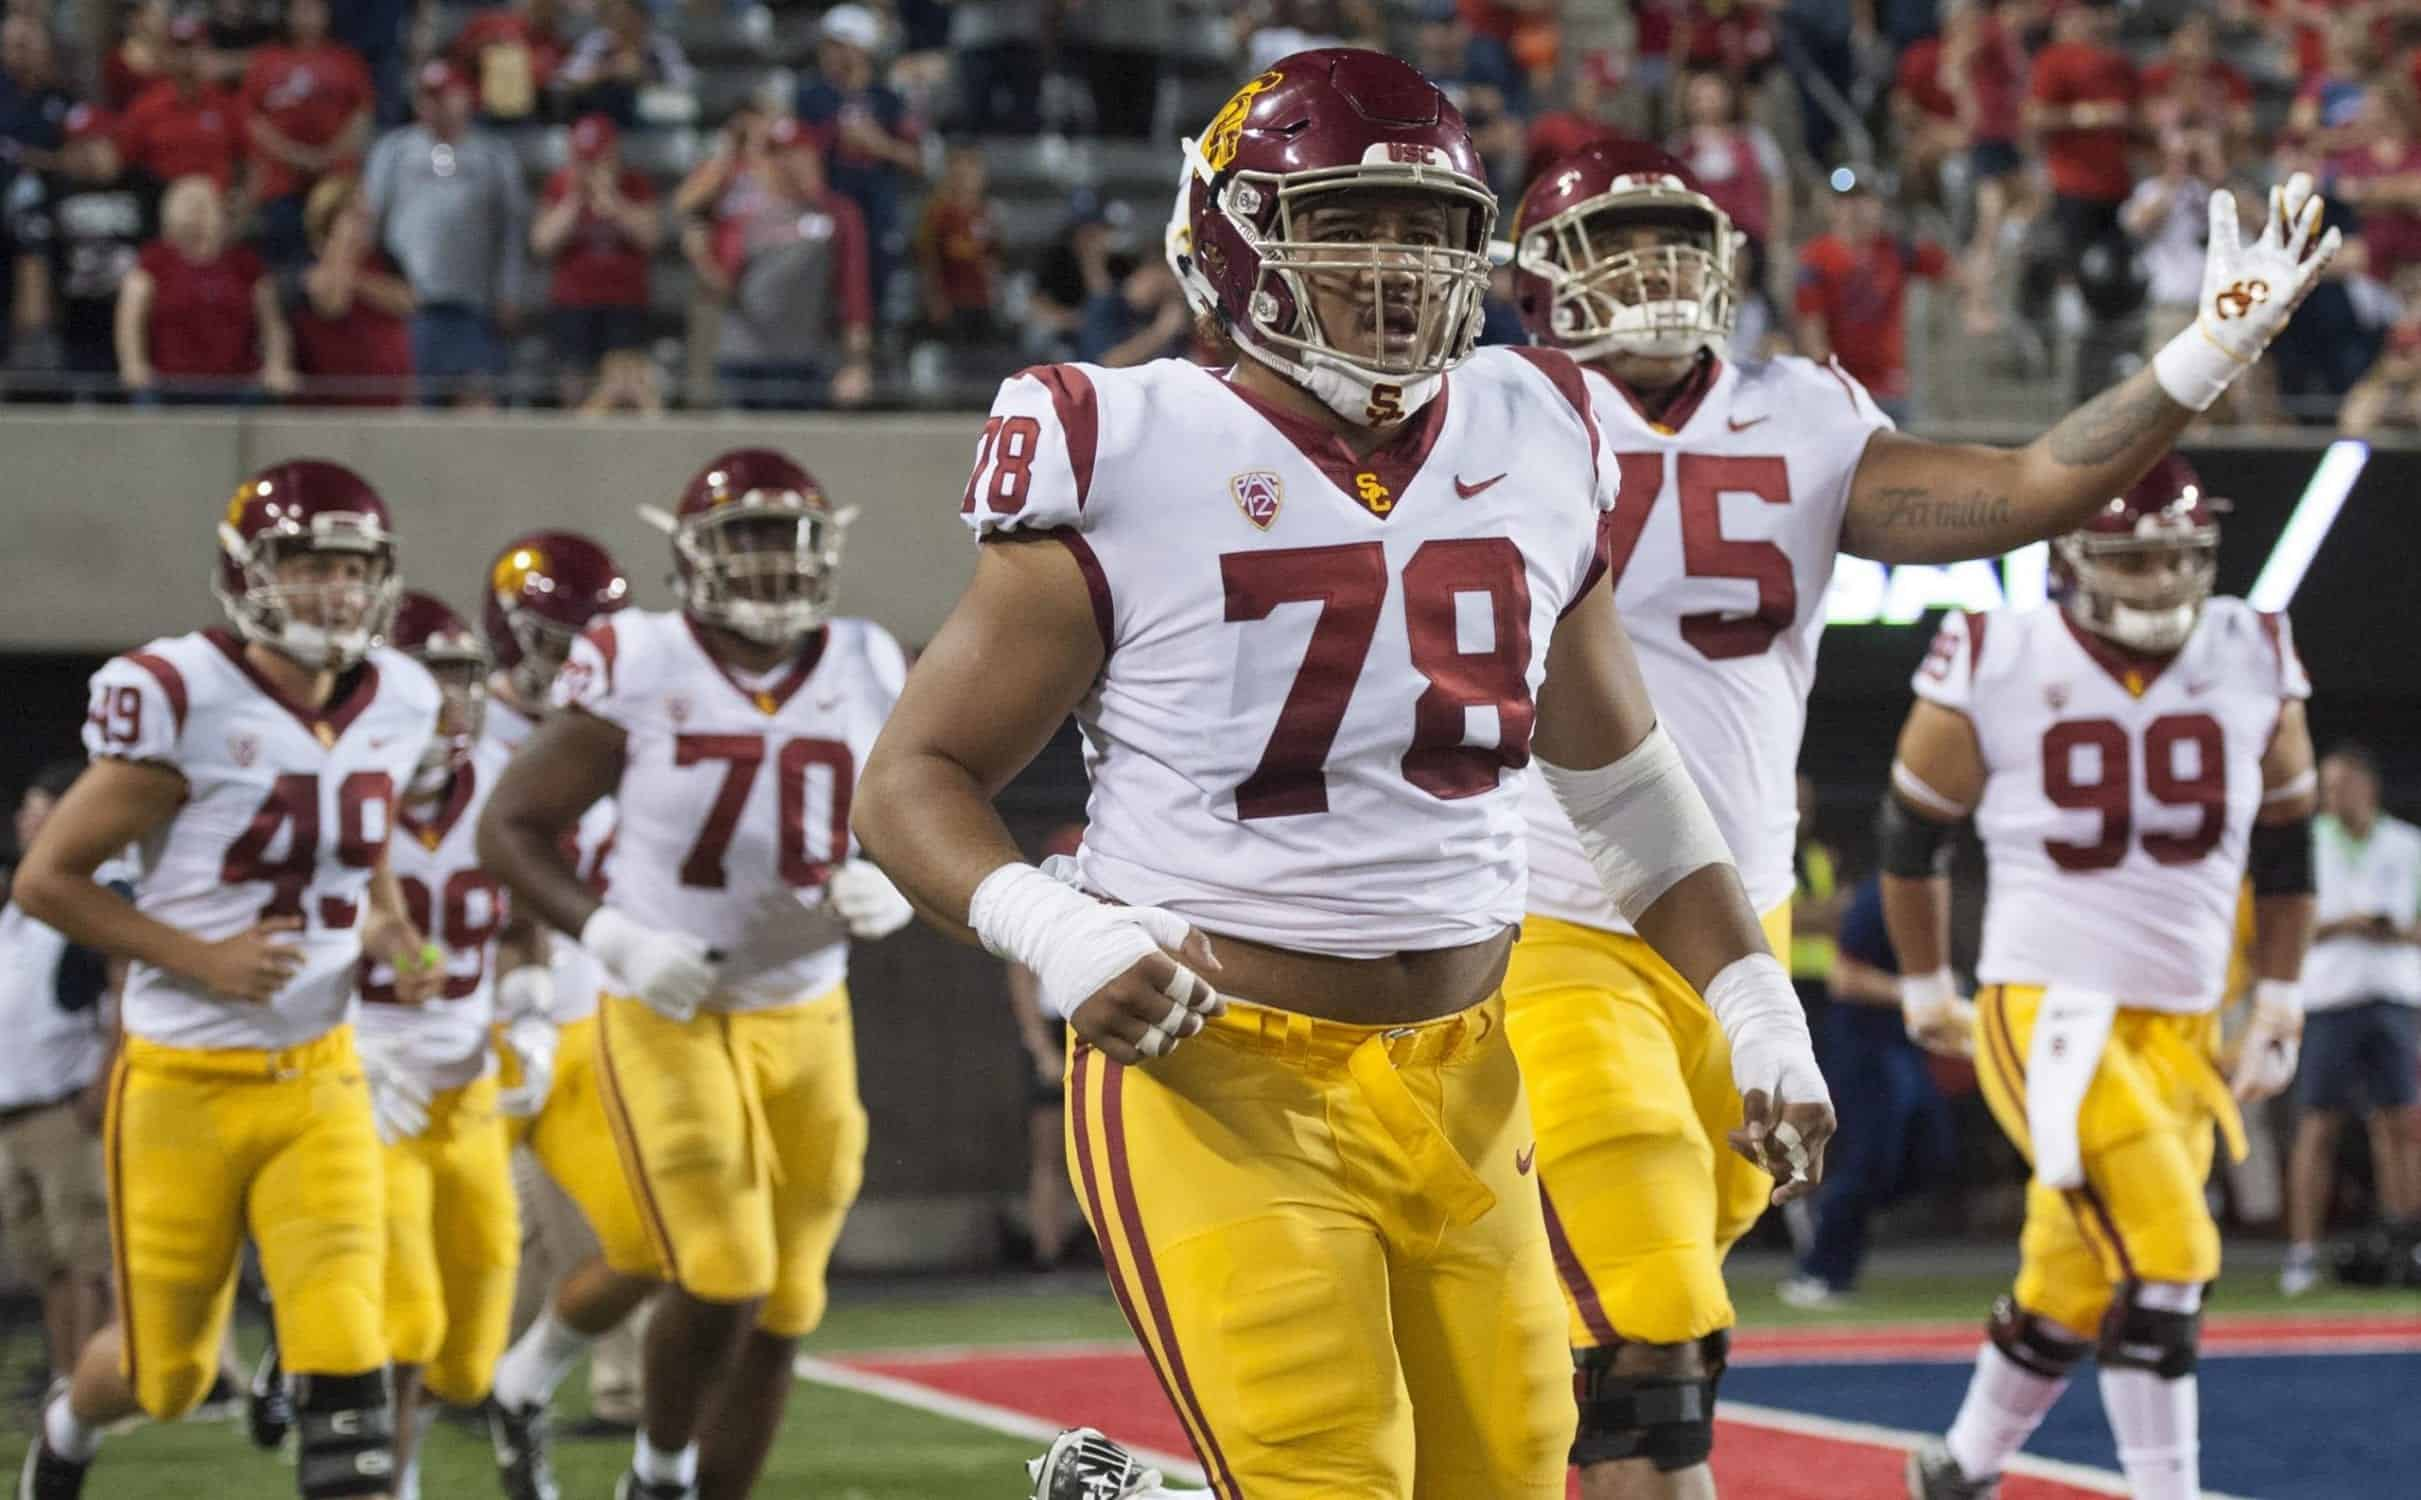 2021 NFL Draft: Analyzing two of the USC defensive linemen